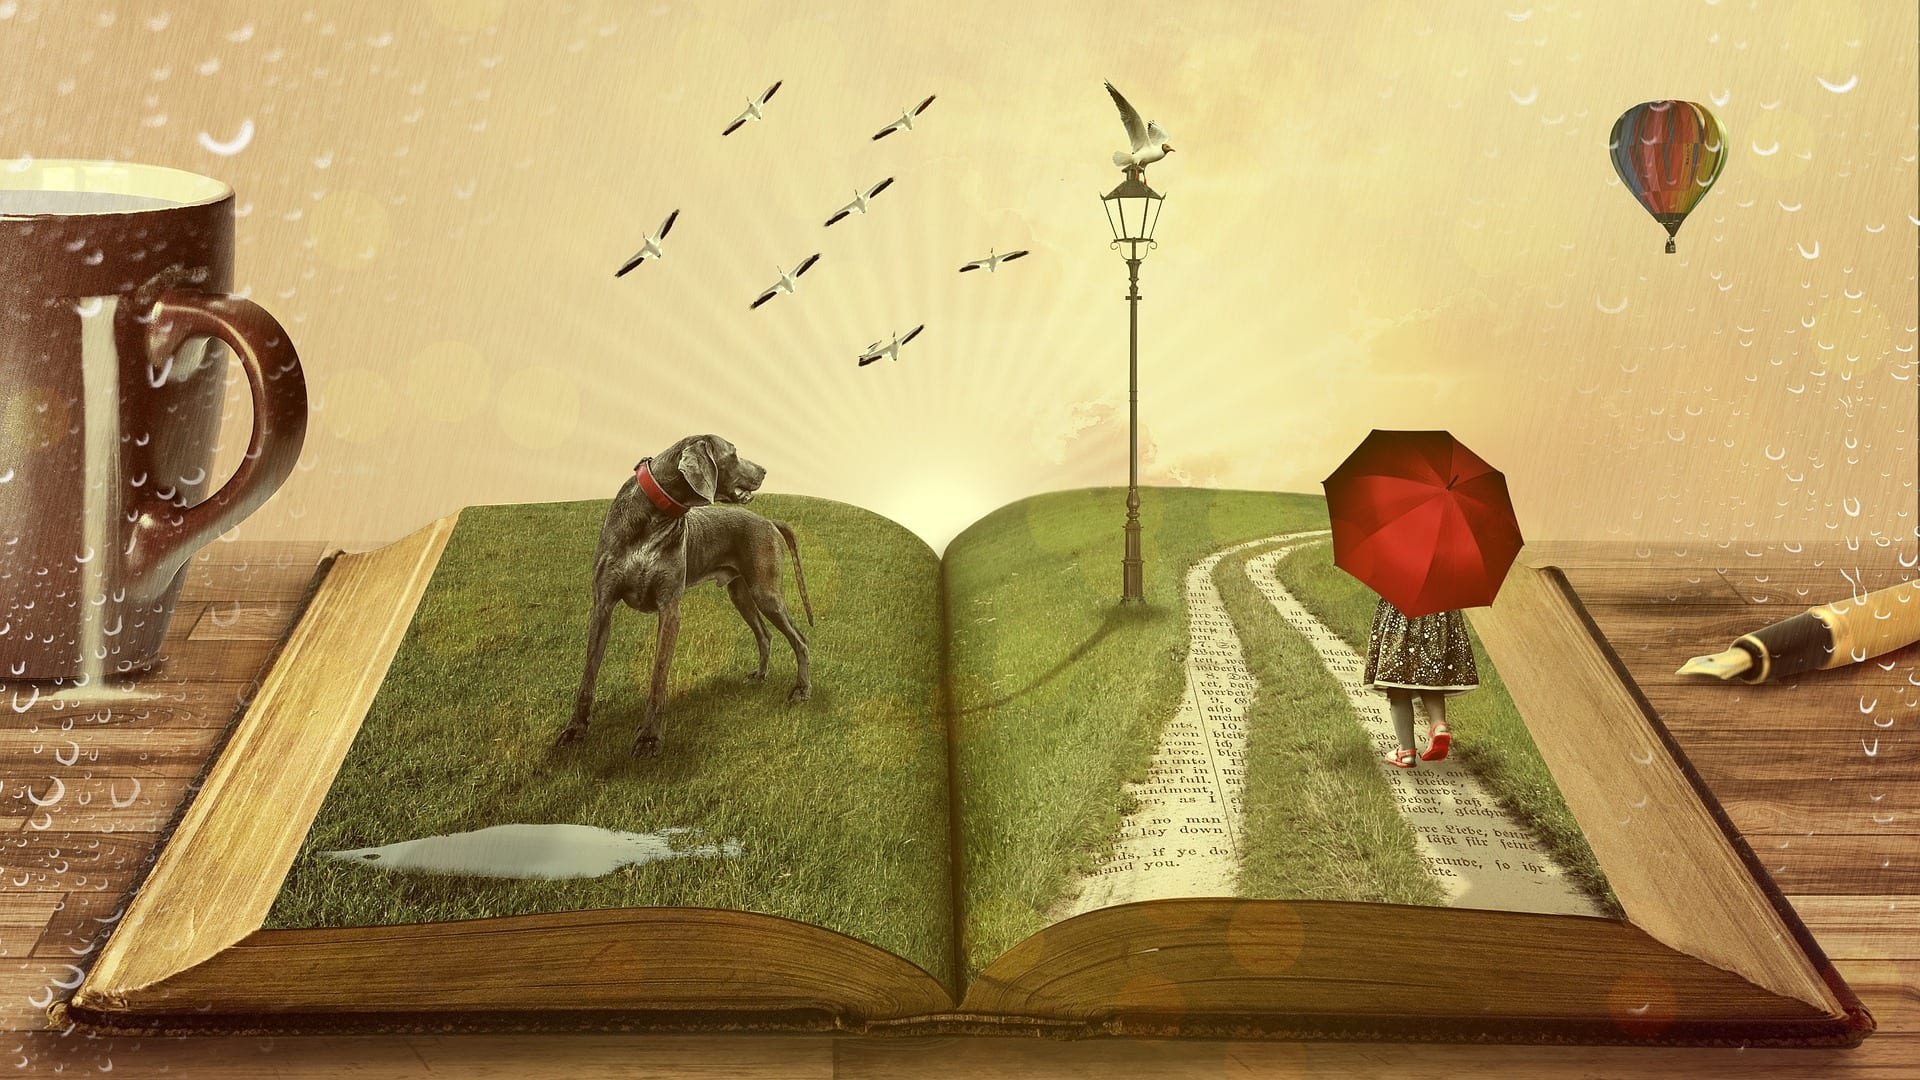 Magical scene emerging from a book